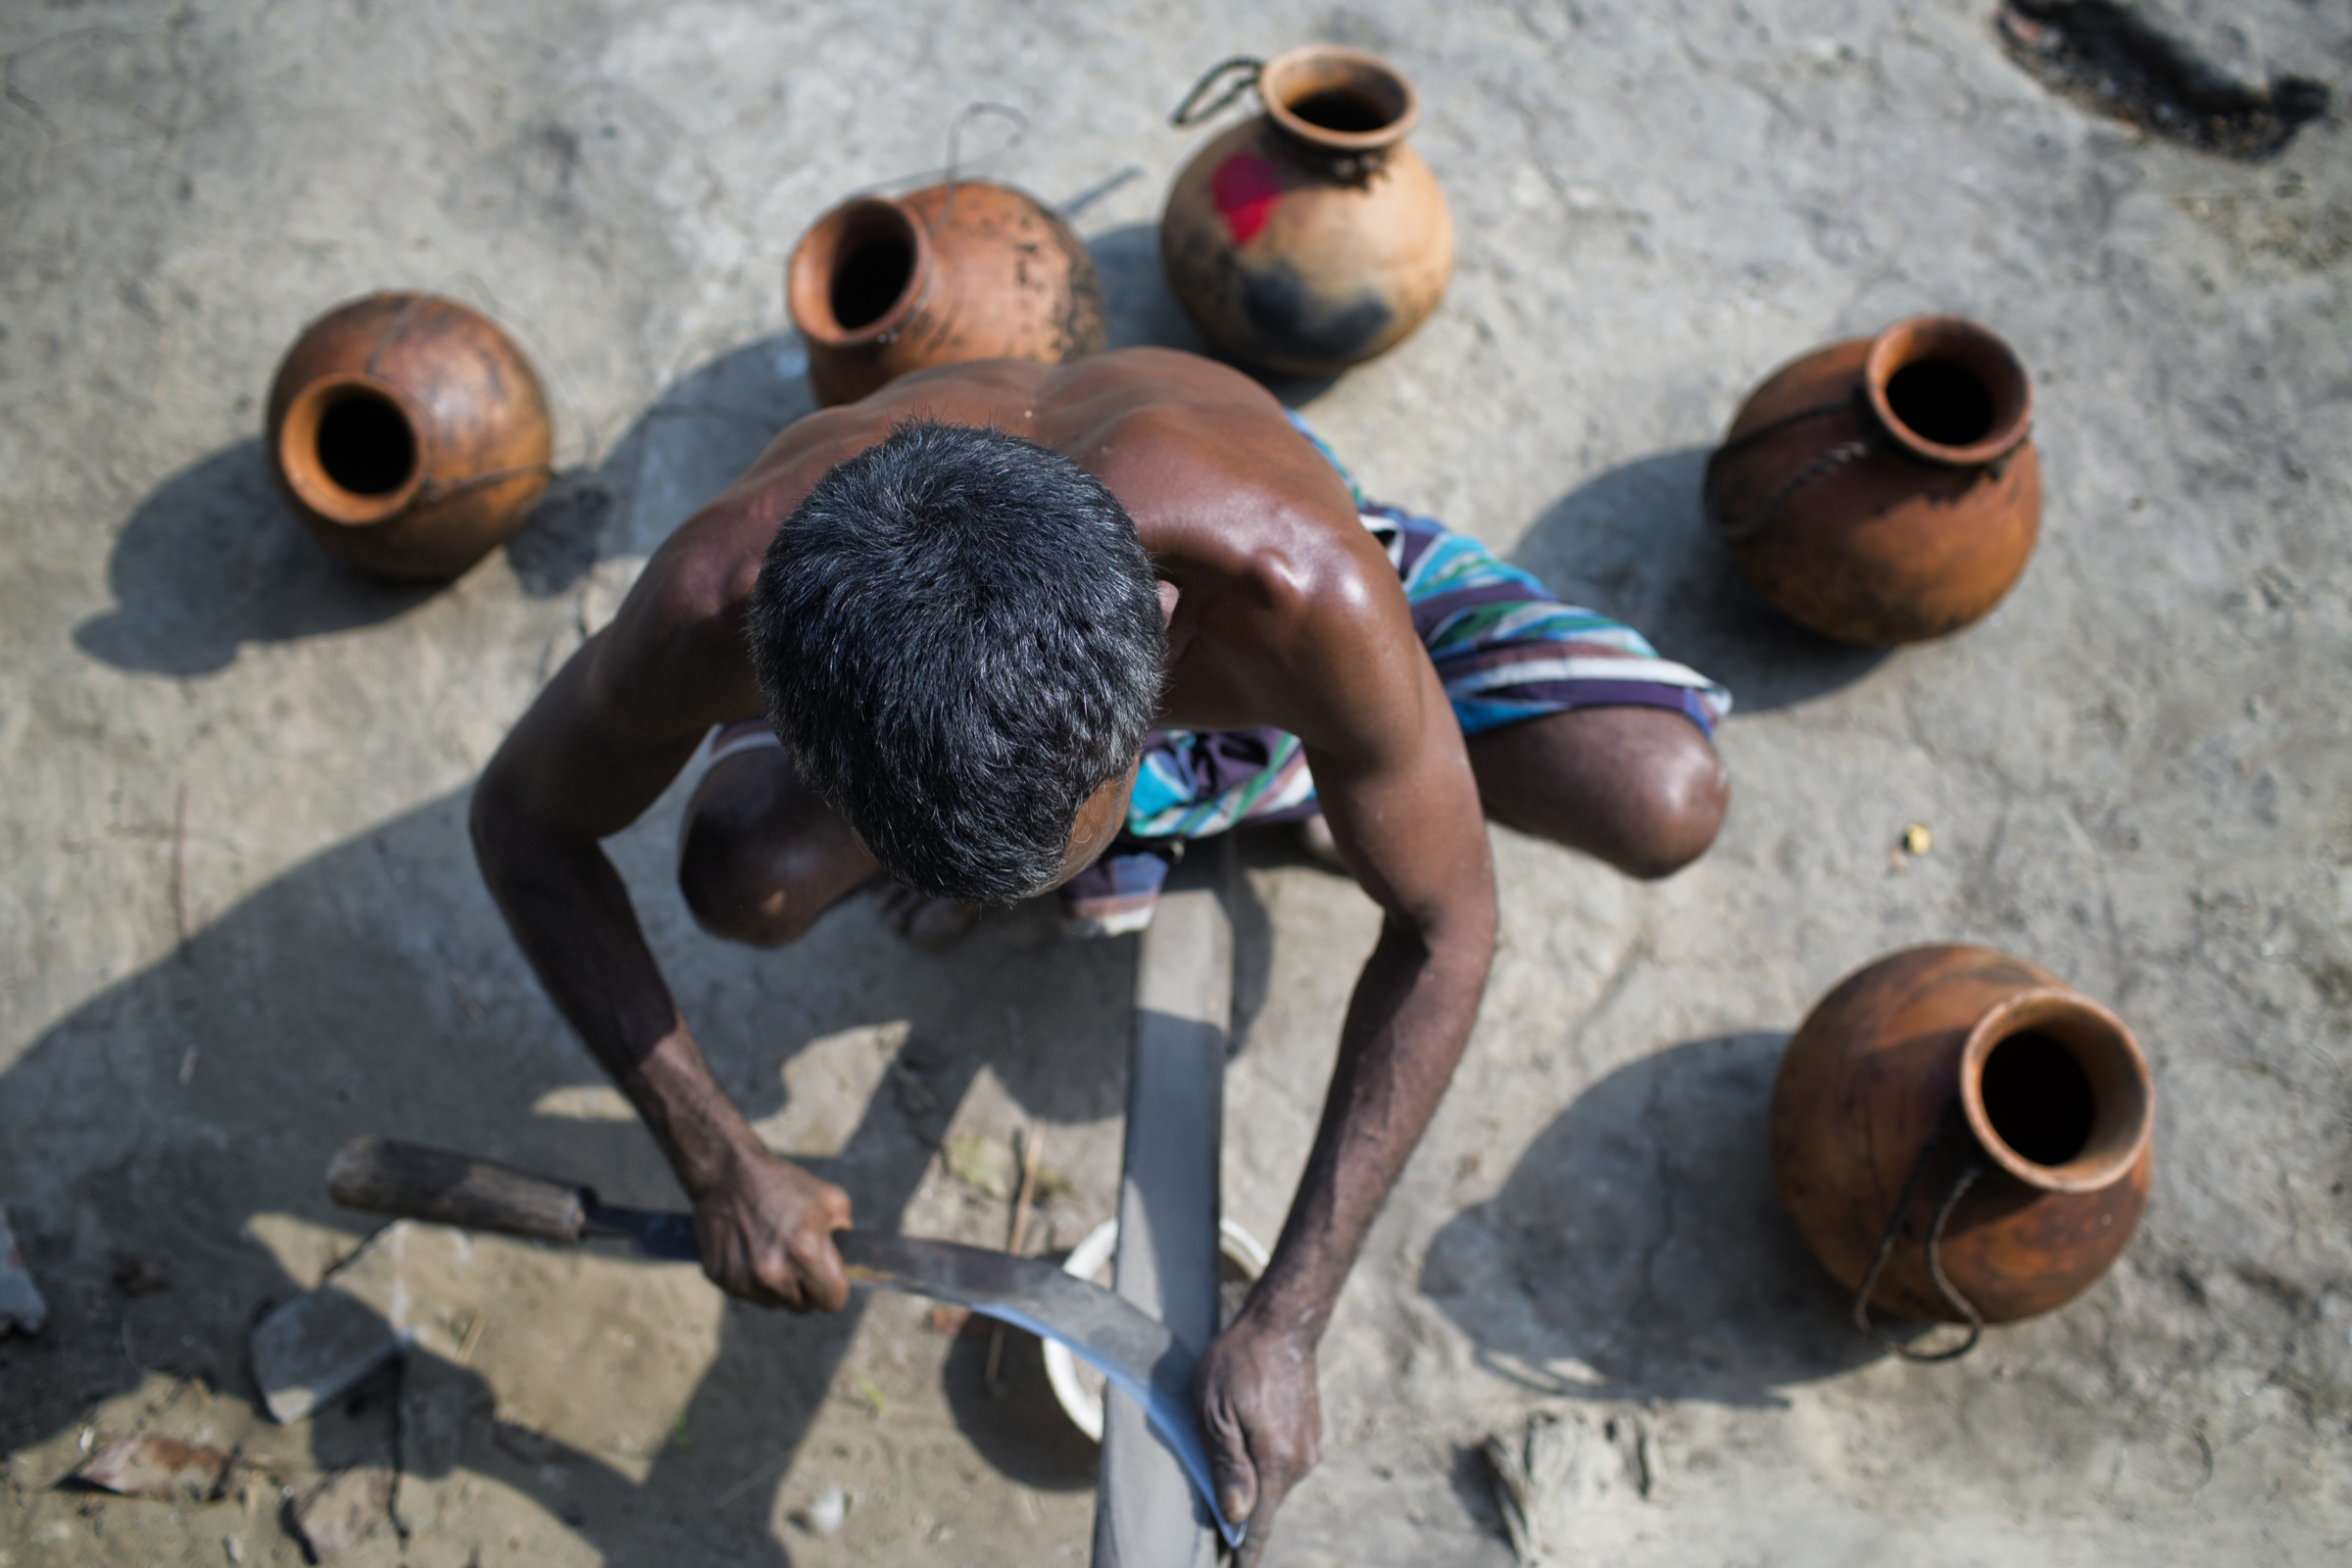 A gachhi sharpens the curved knife he will use to carve away the bark of date palm trees, which will cause the trees to ooze the sap the gachhi is interested in. Photograph by A.M. Ahad